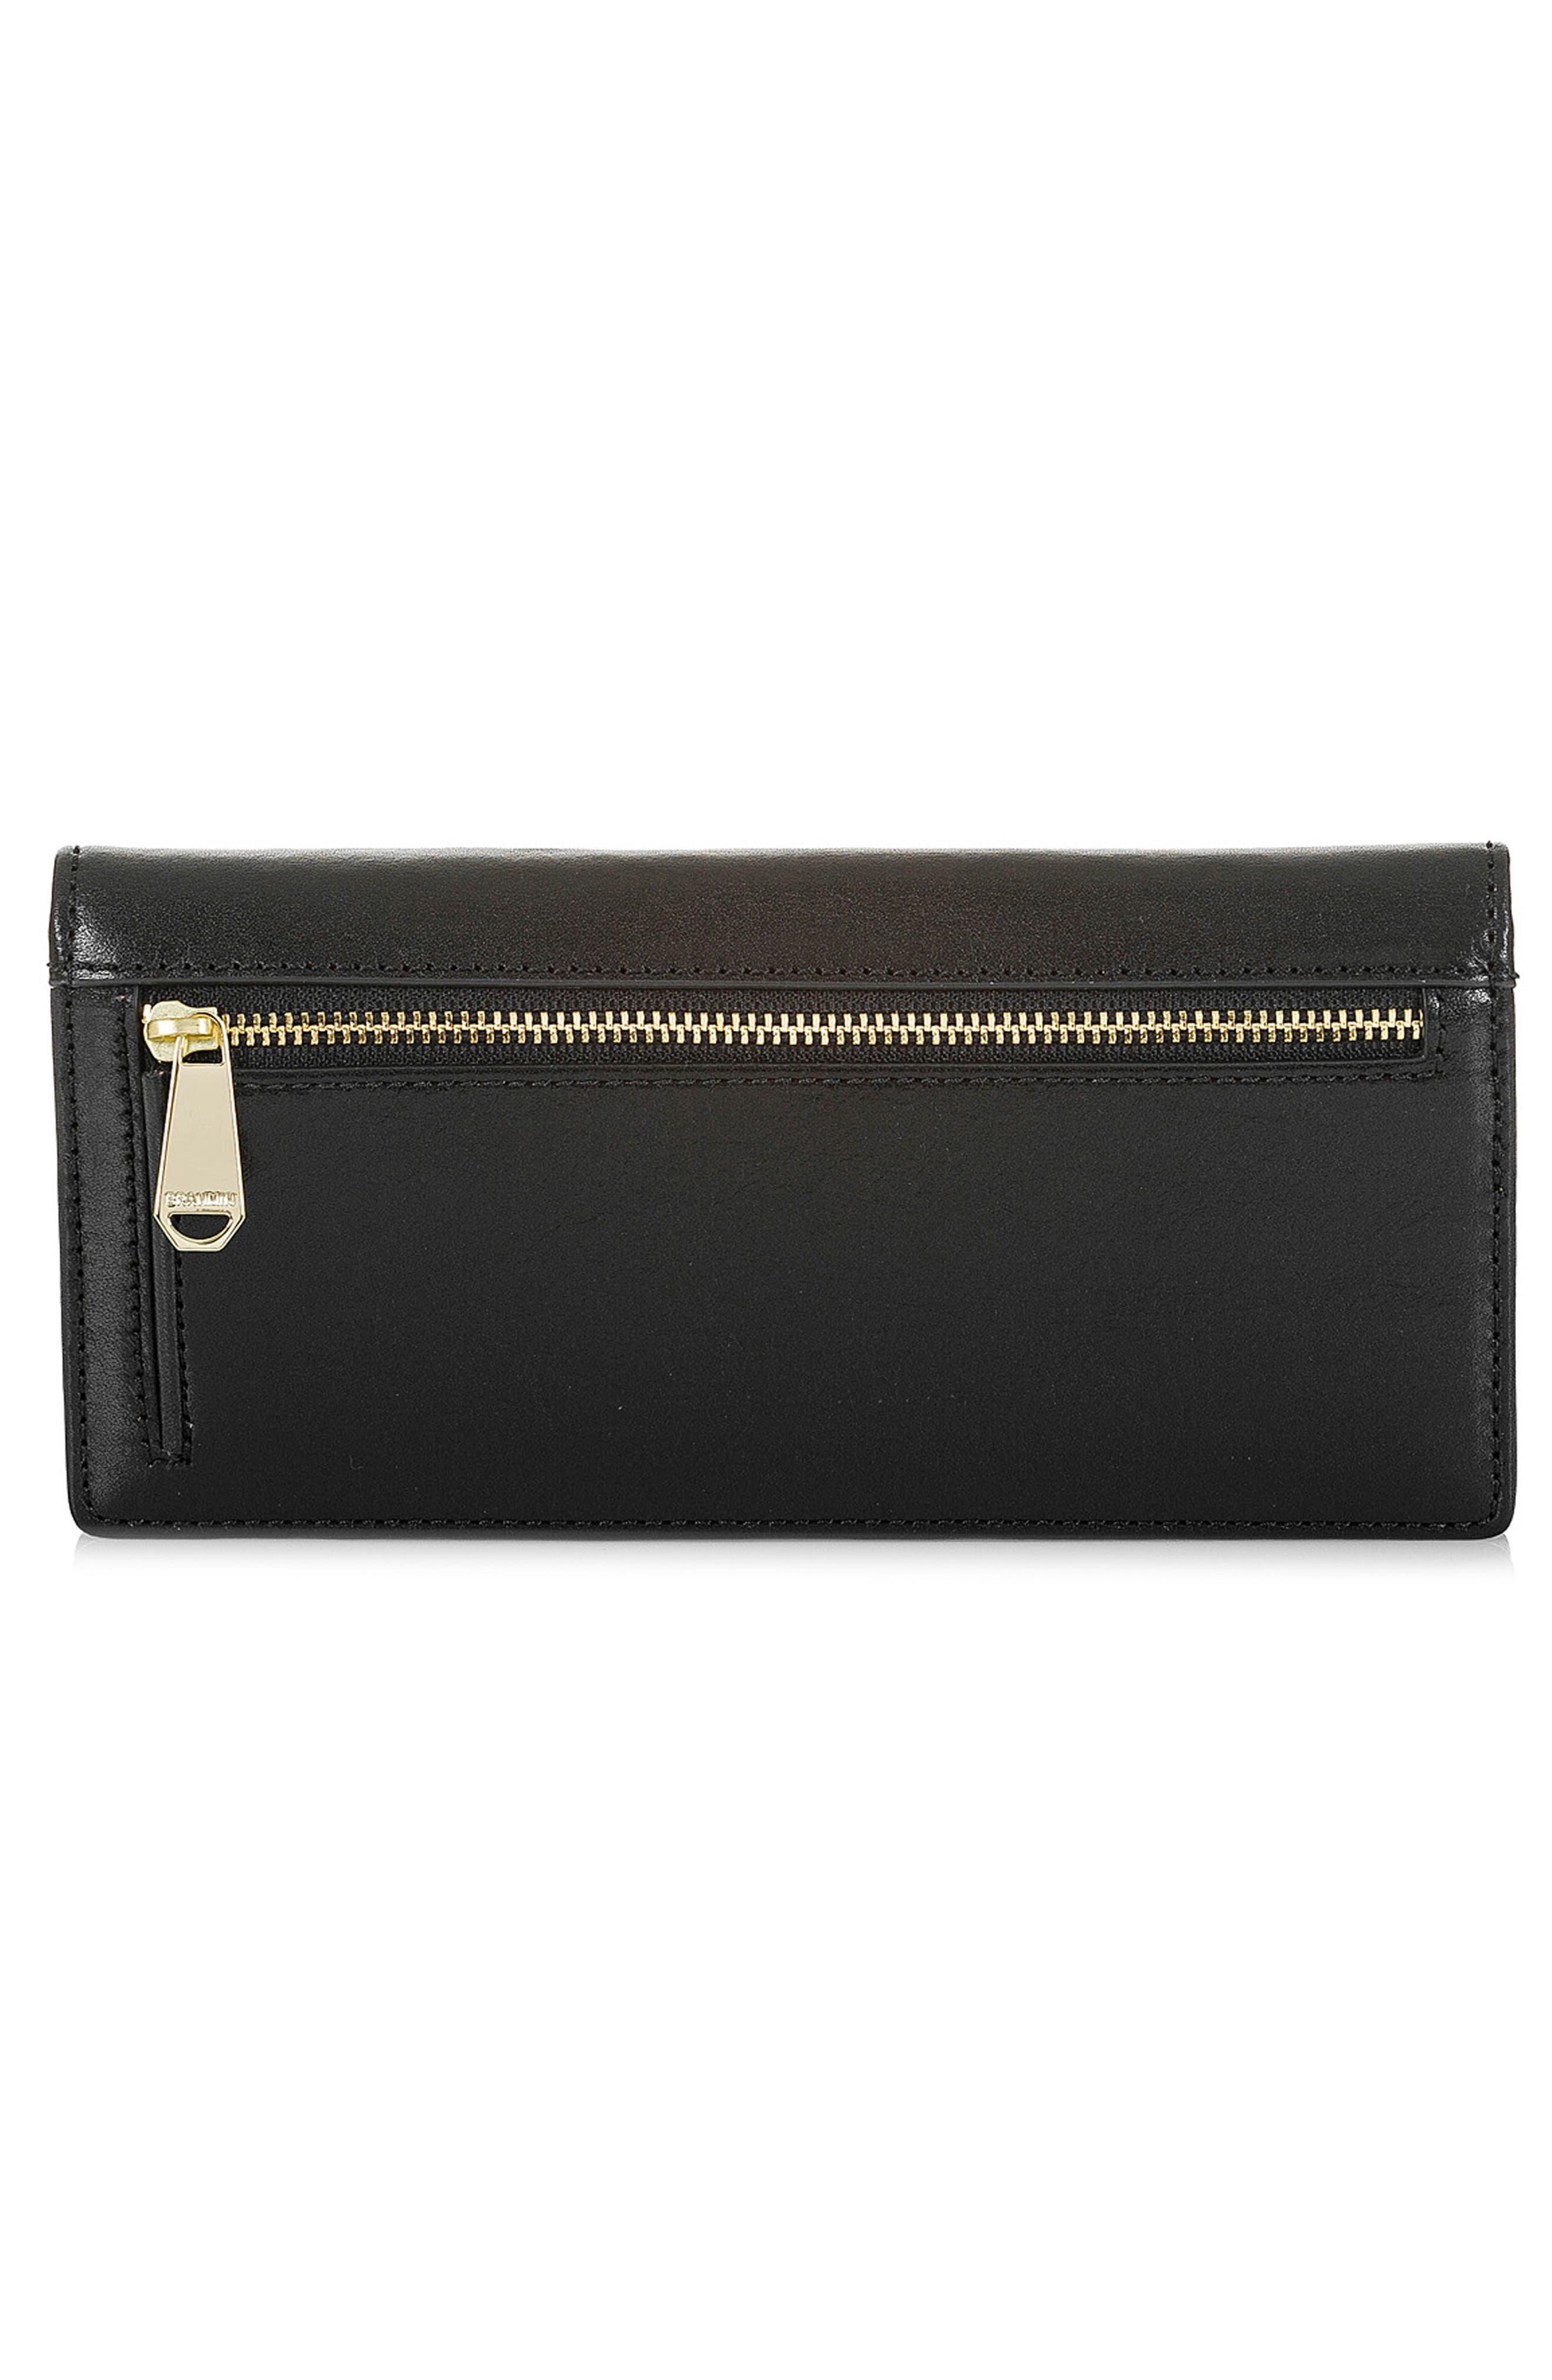 Ady Leather Wallet,                             Alternate thumbnail 3, color,                             BLACK